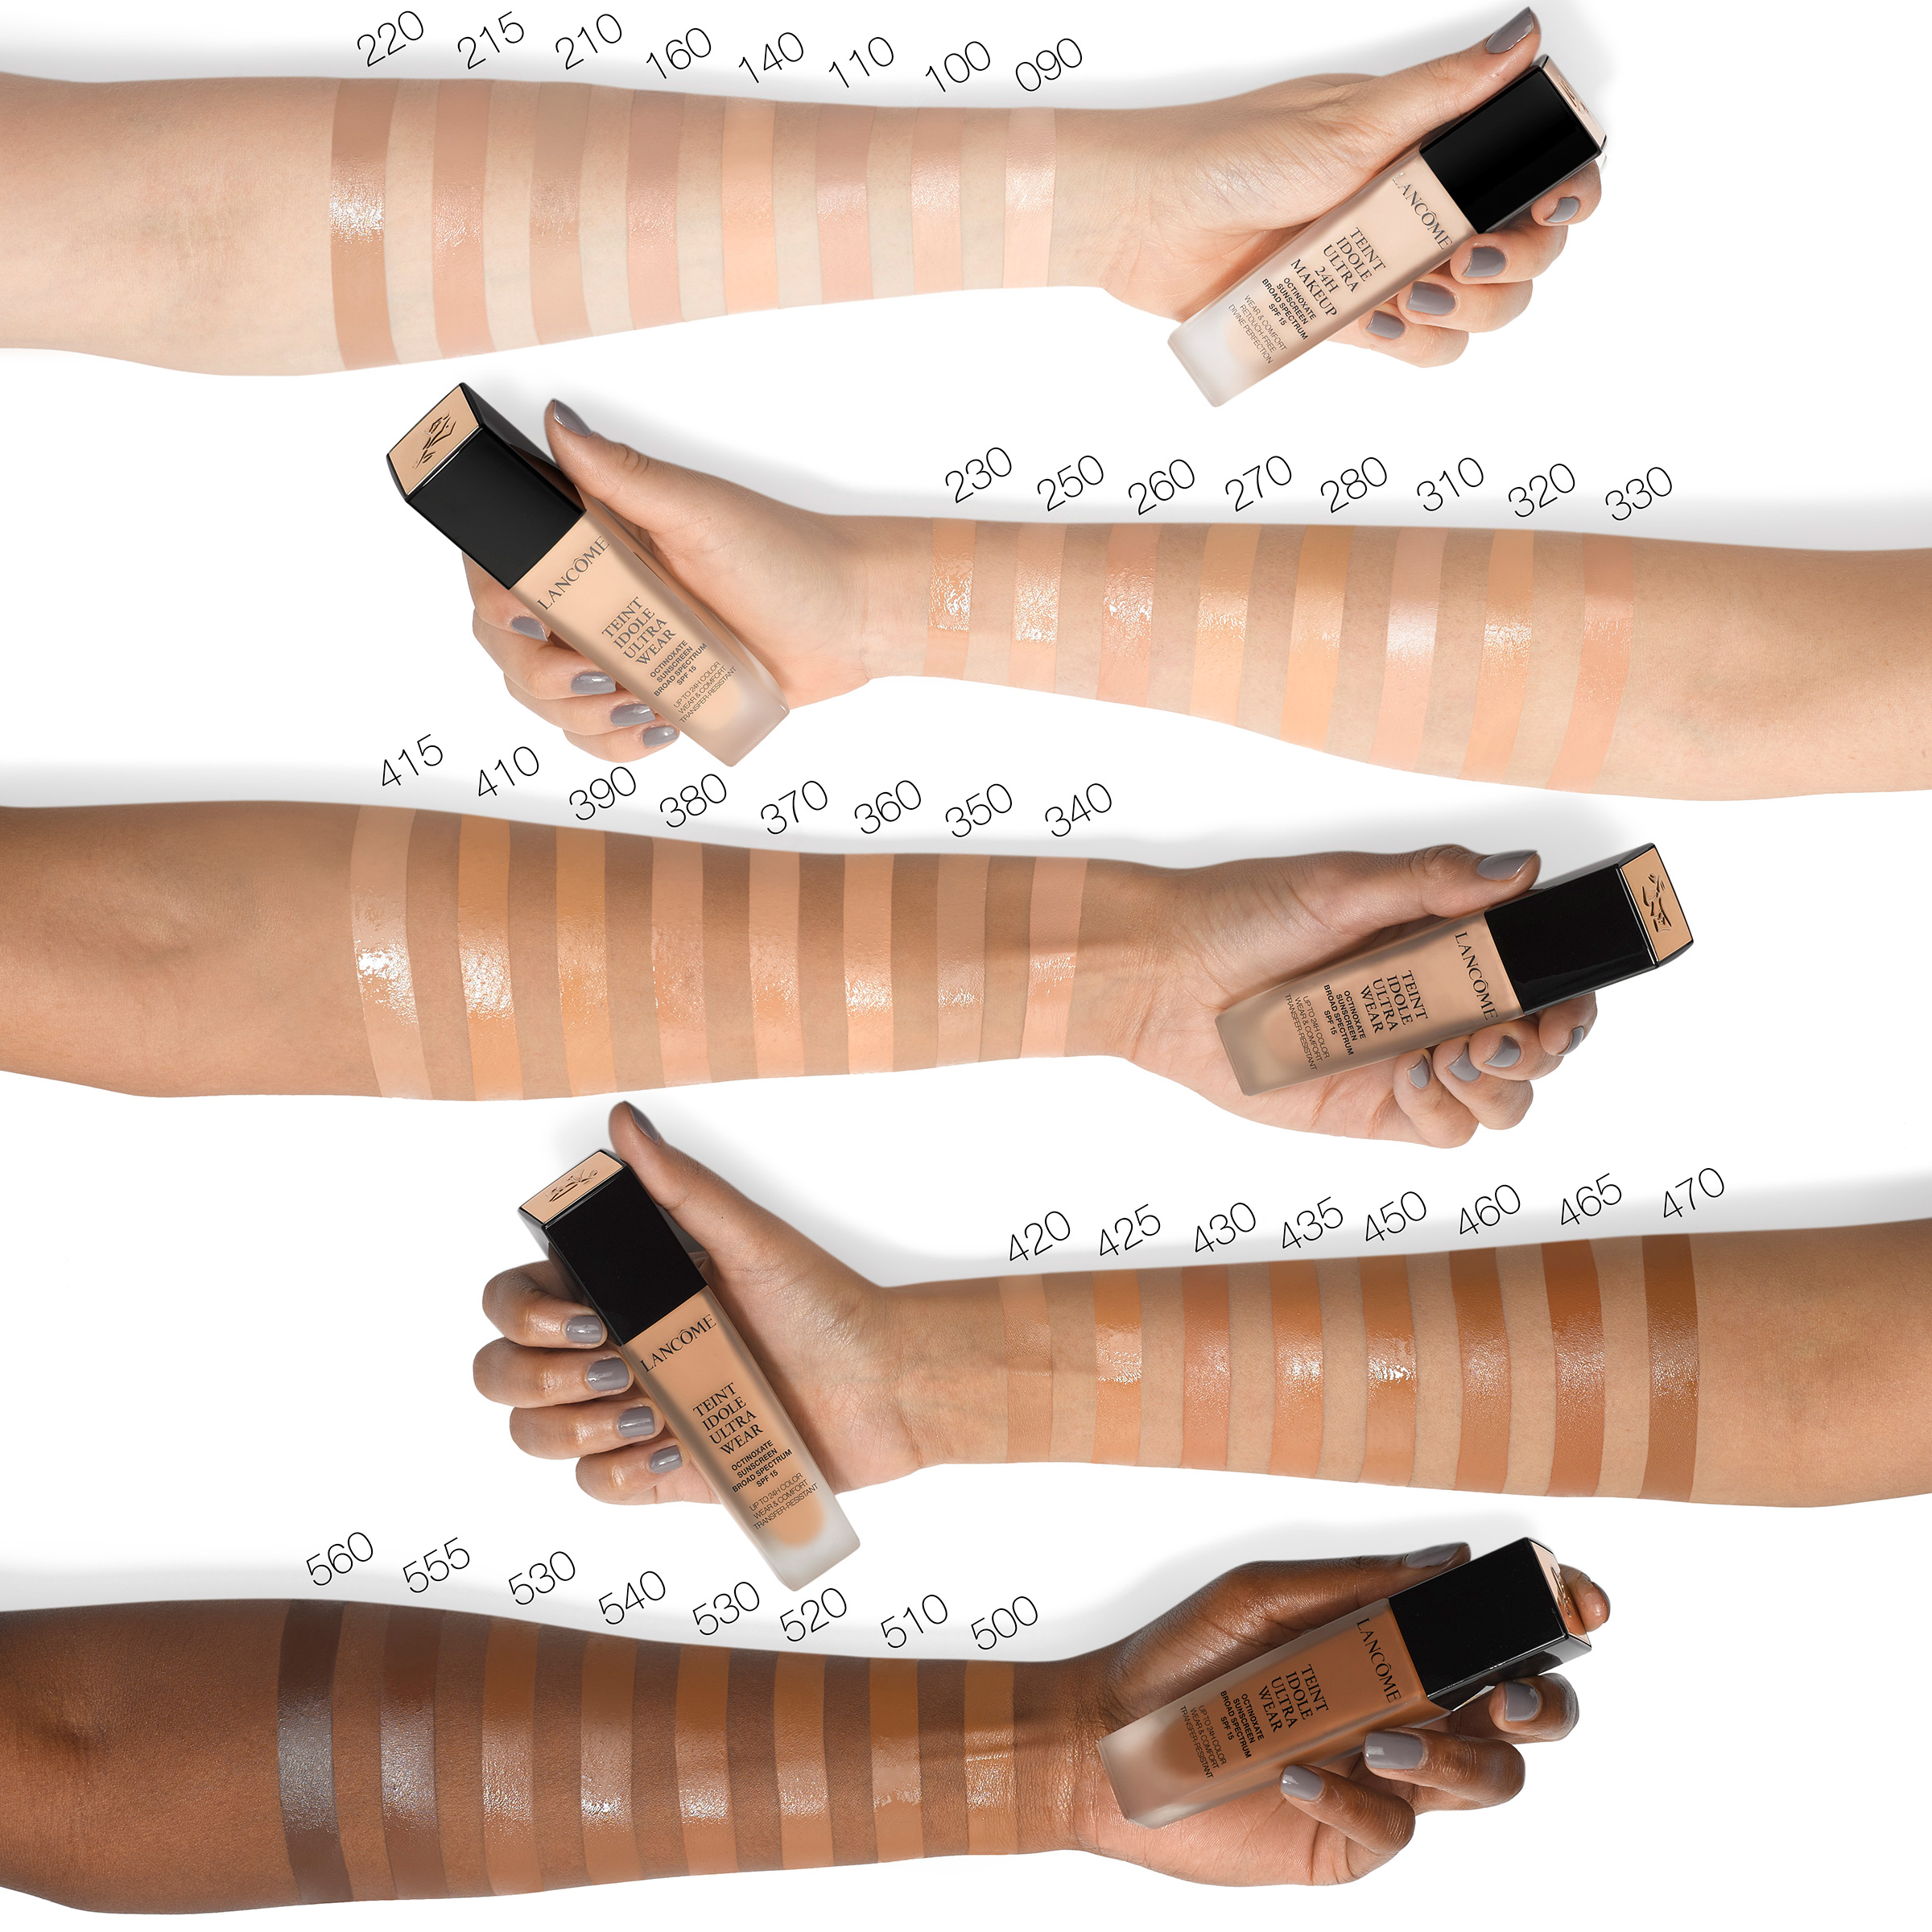 lancome_swatches_110817_1.jpg